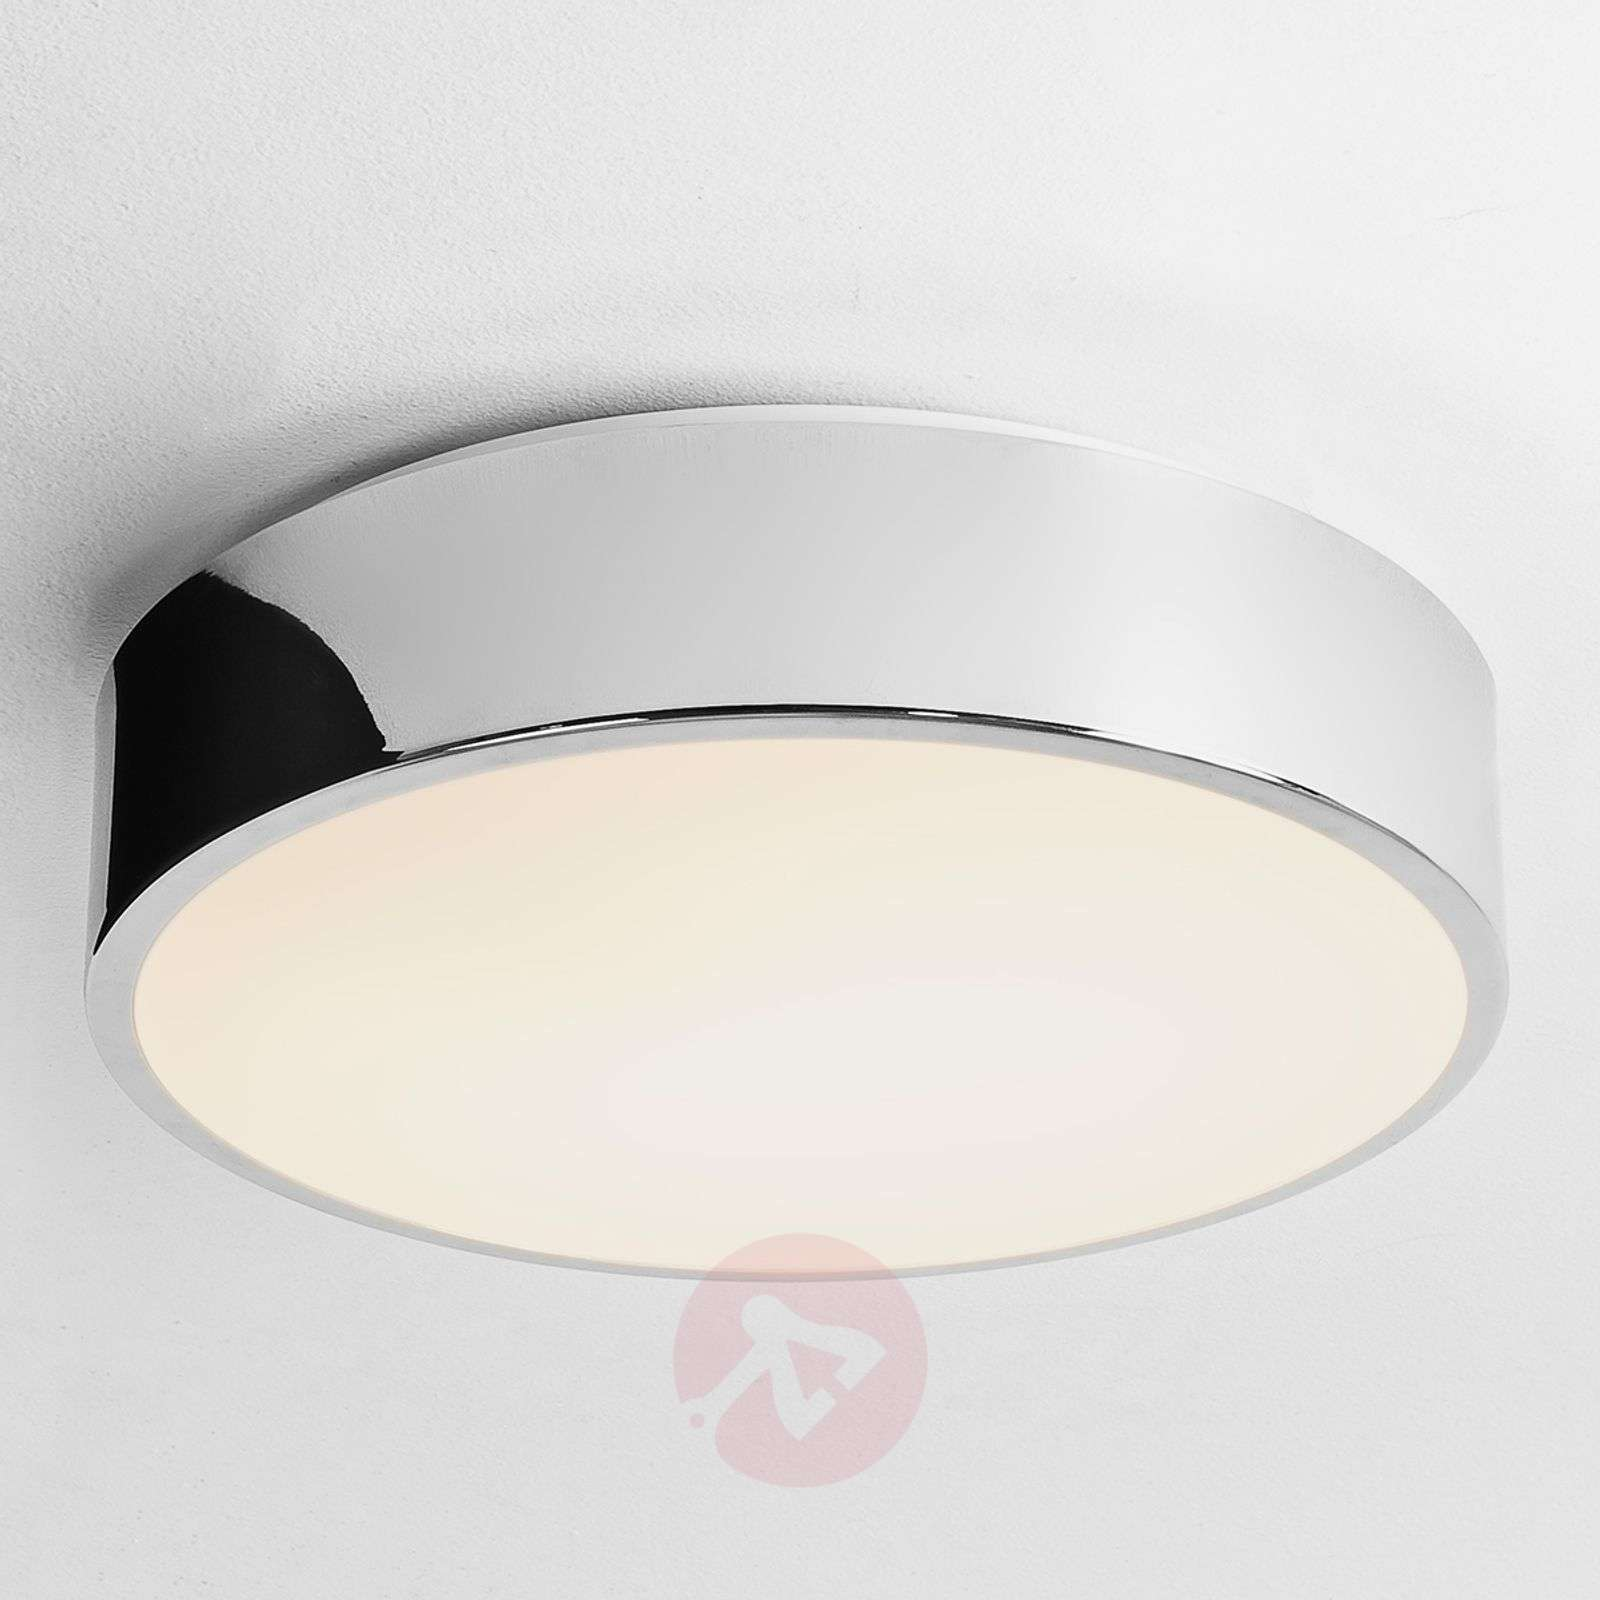 Mallon Plus Ceiling Light Modern Chrome-1020084-02